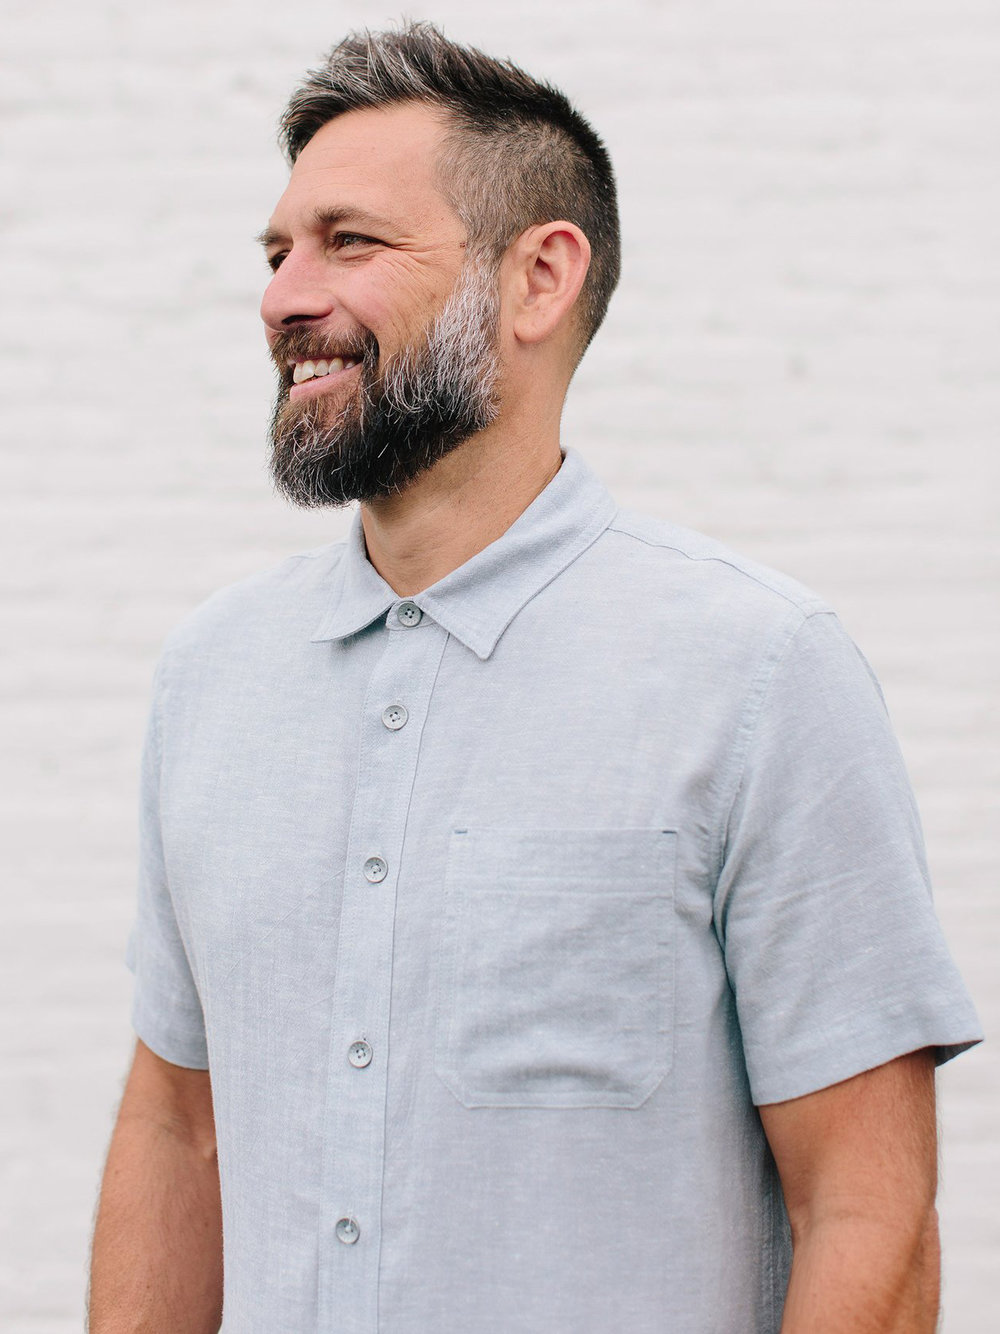 The Parker Shirt by Saltura | Men's Capsule Wardrobe on The Good Trade